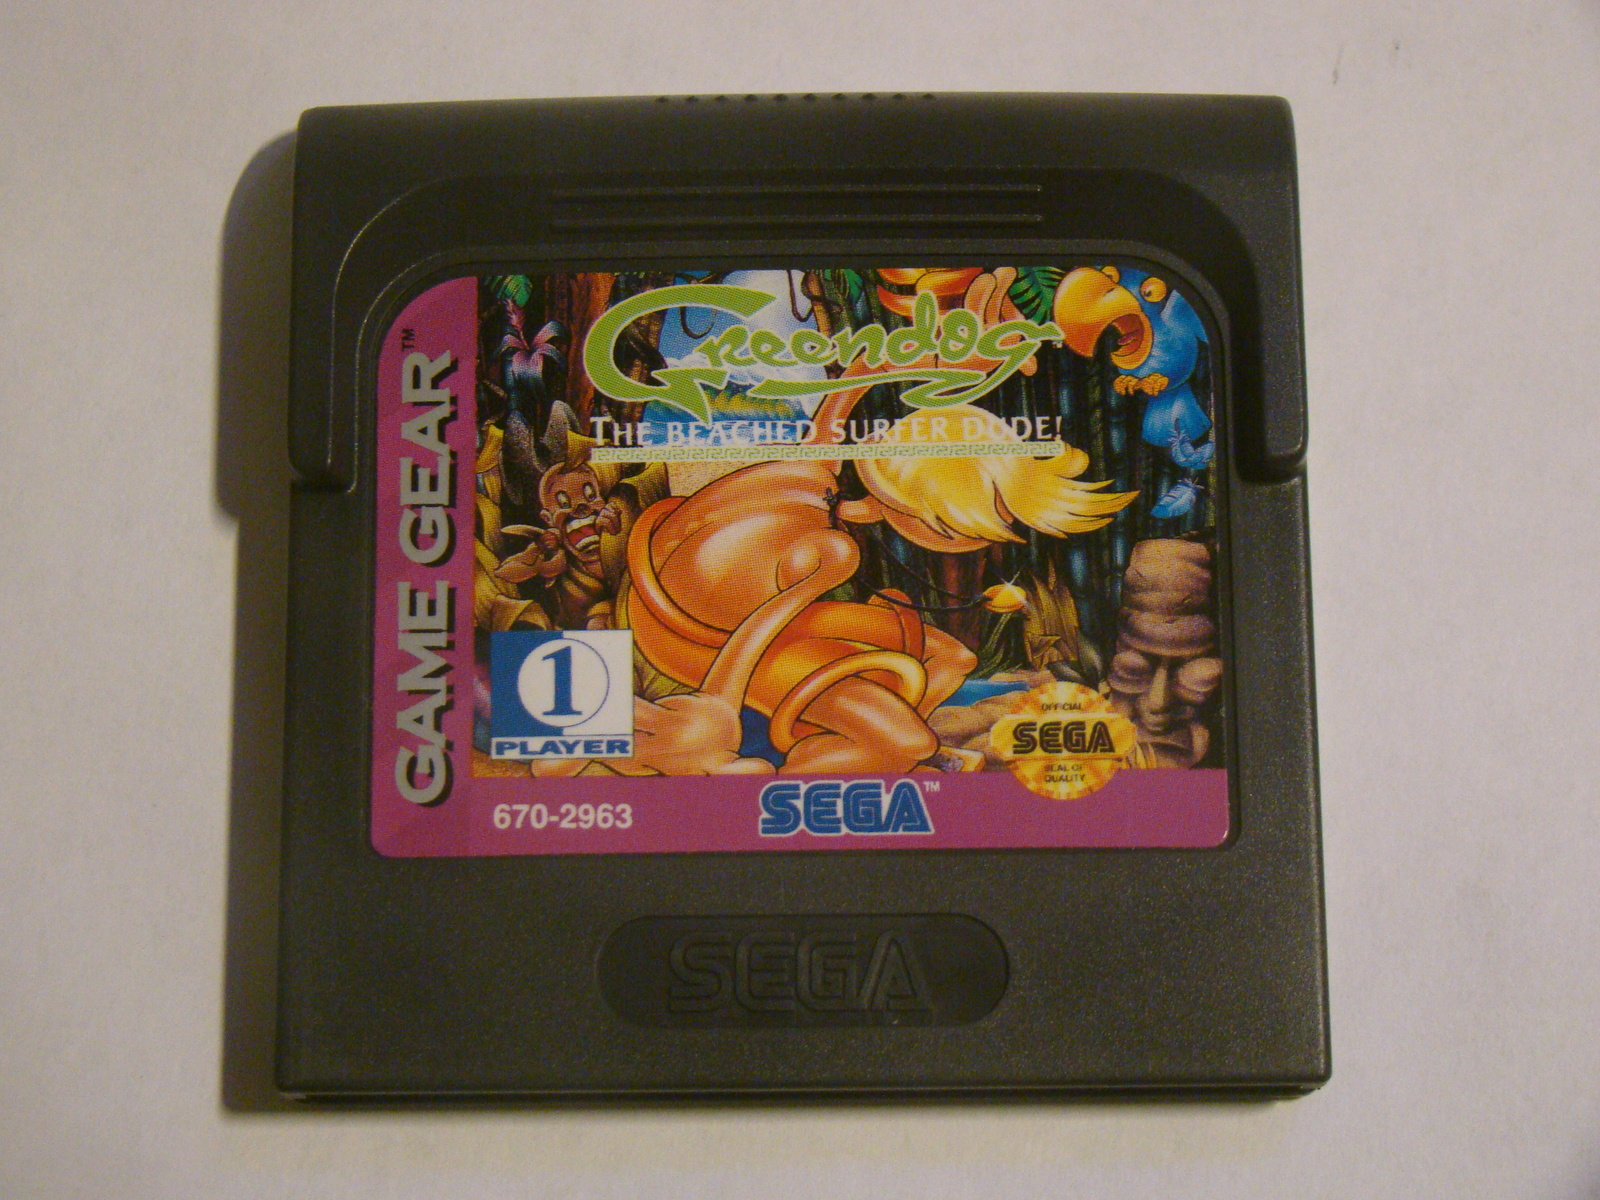 SEGA GAME GEAR - Green dog THE BEACHED SURFER DUDE! (Game Only)